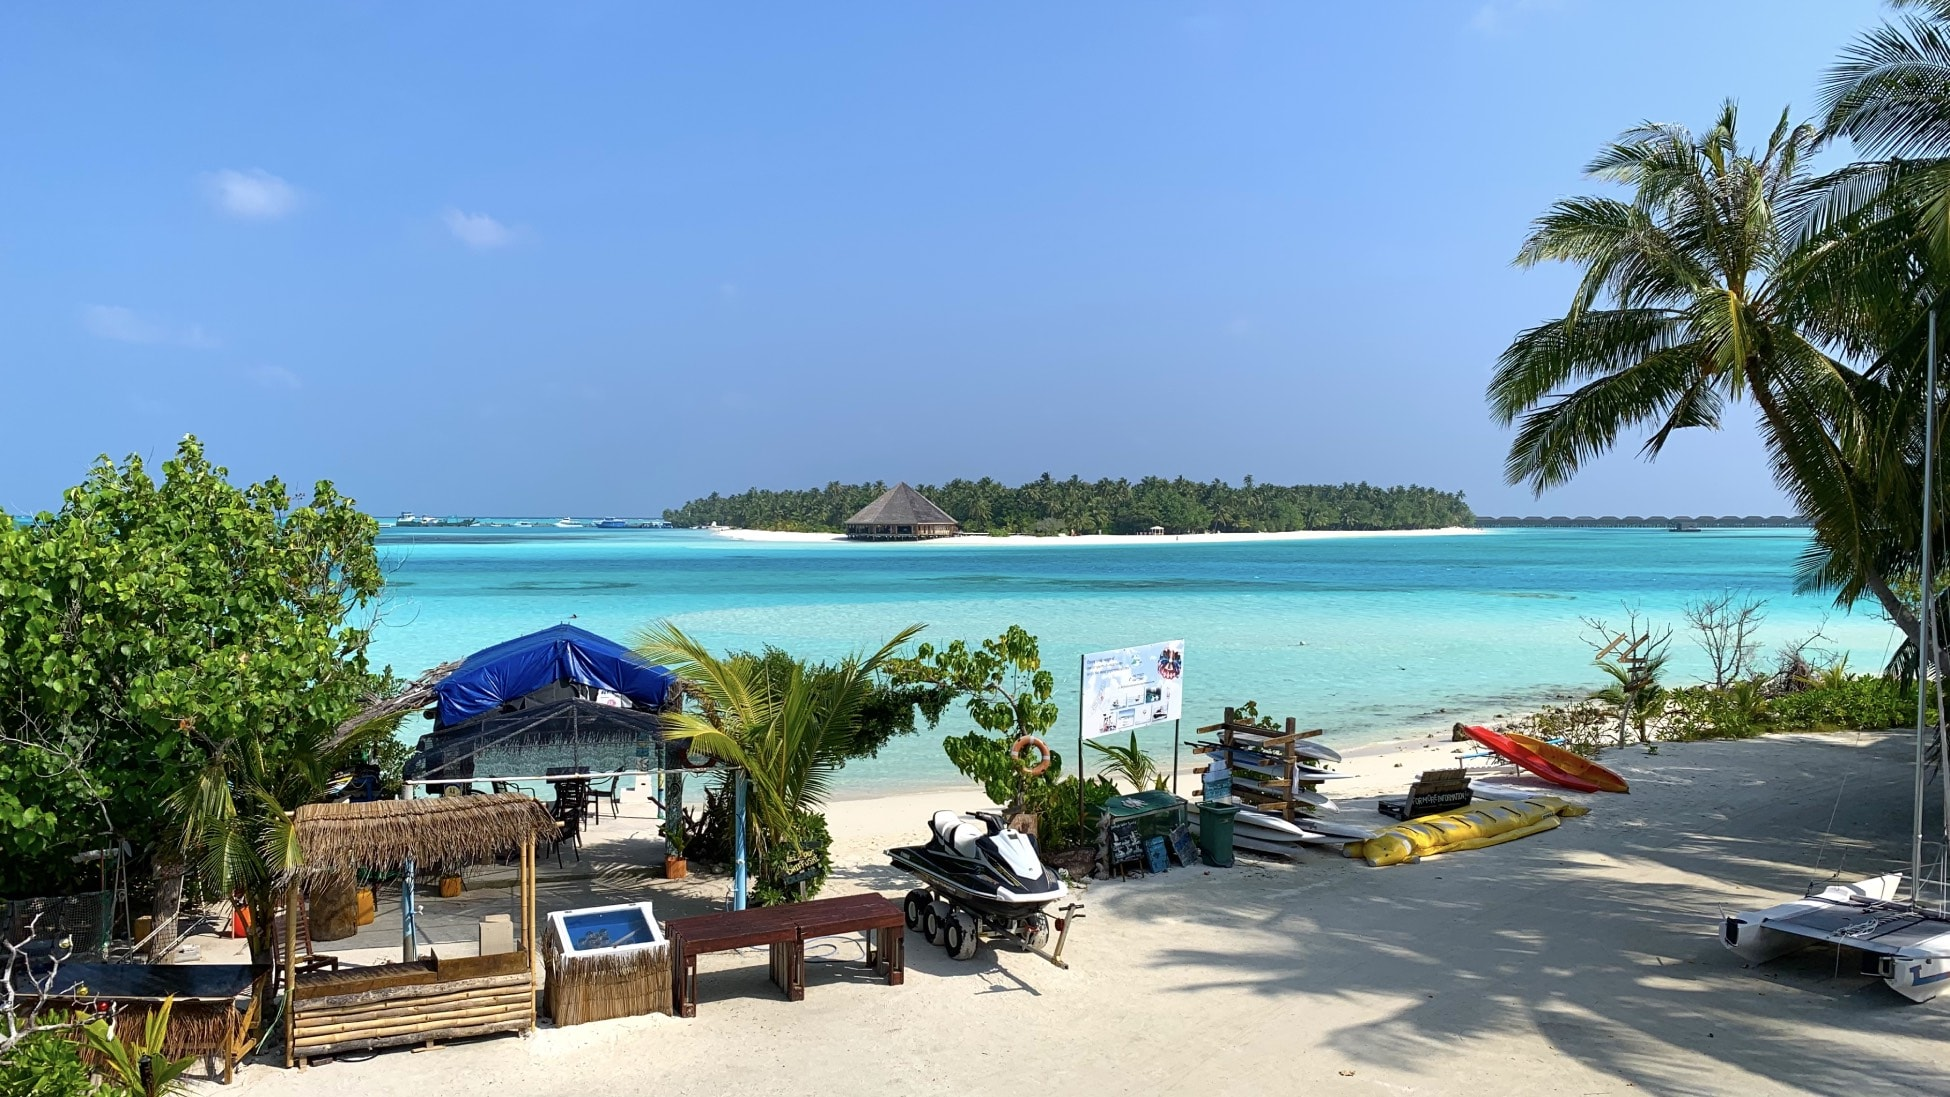 Dhiffushi maldives beach sea island view from club kaafu